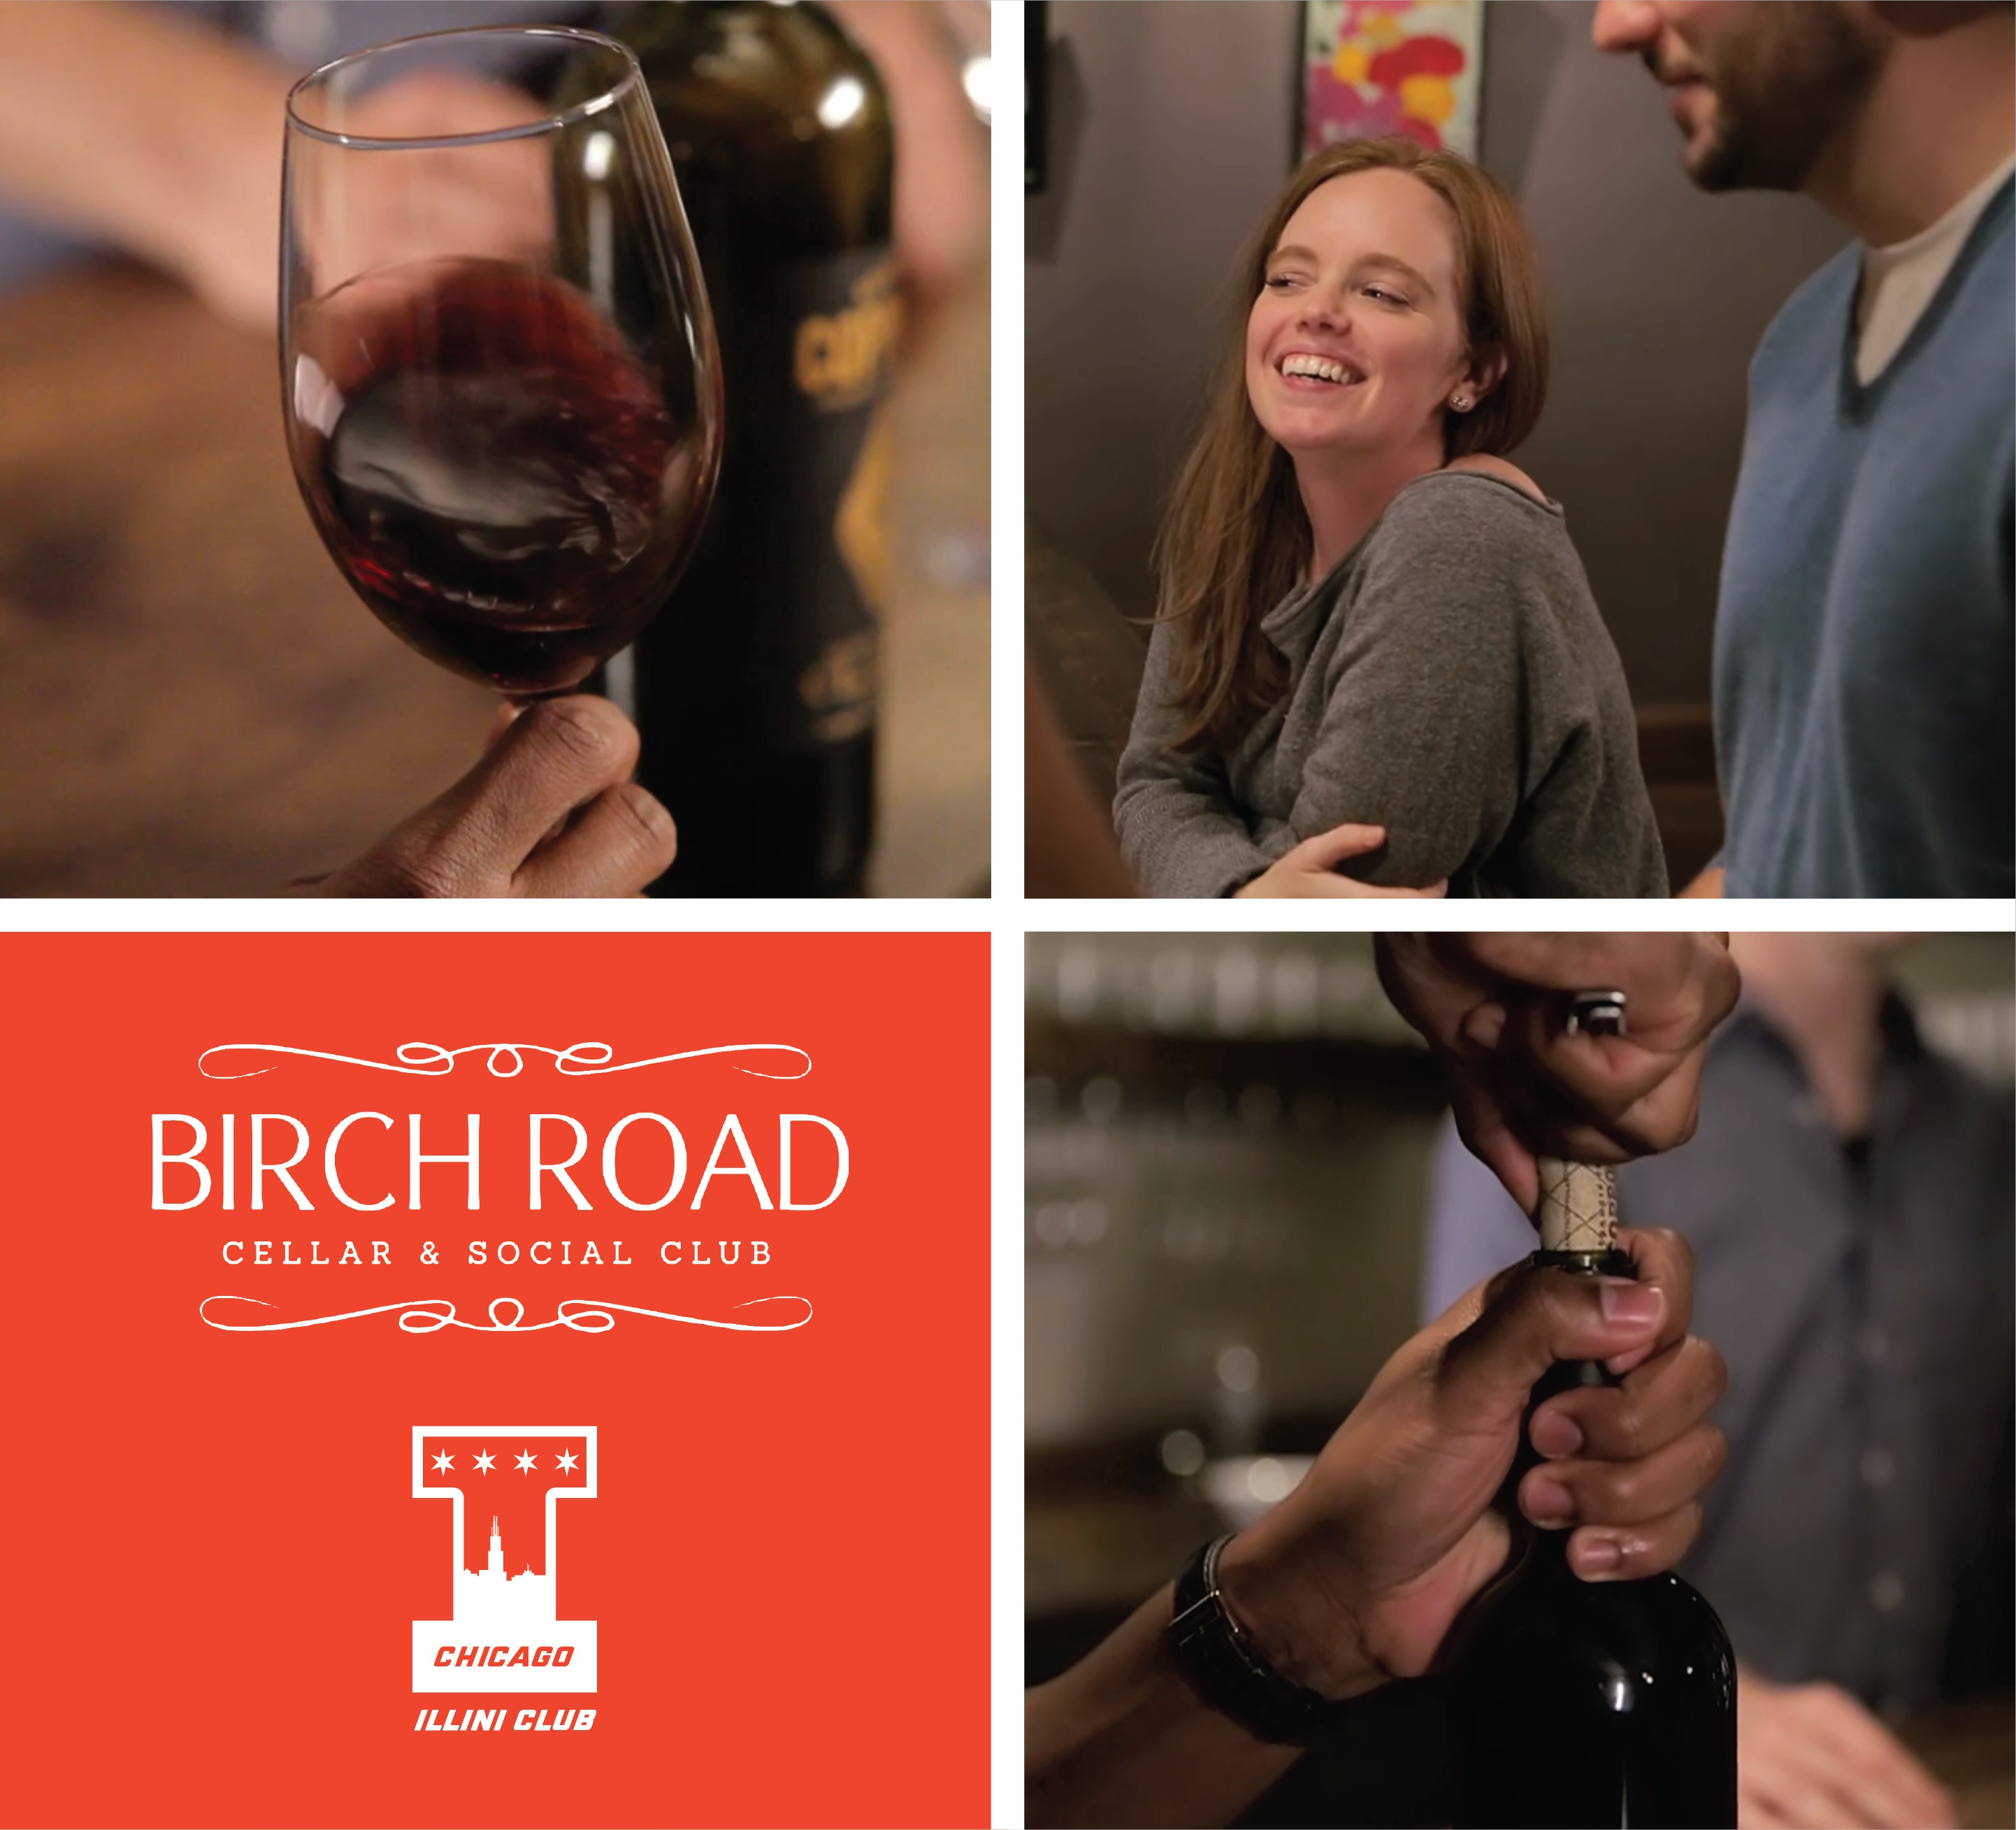 Birch Road Cellar